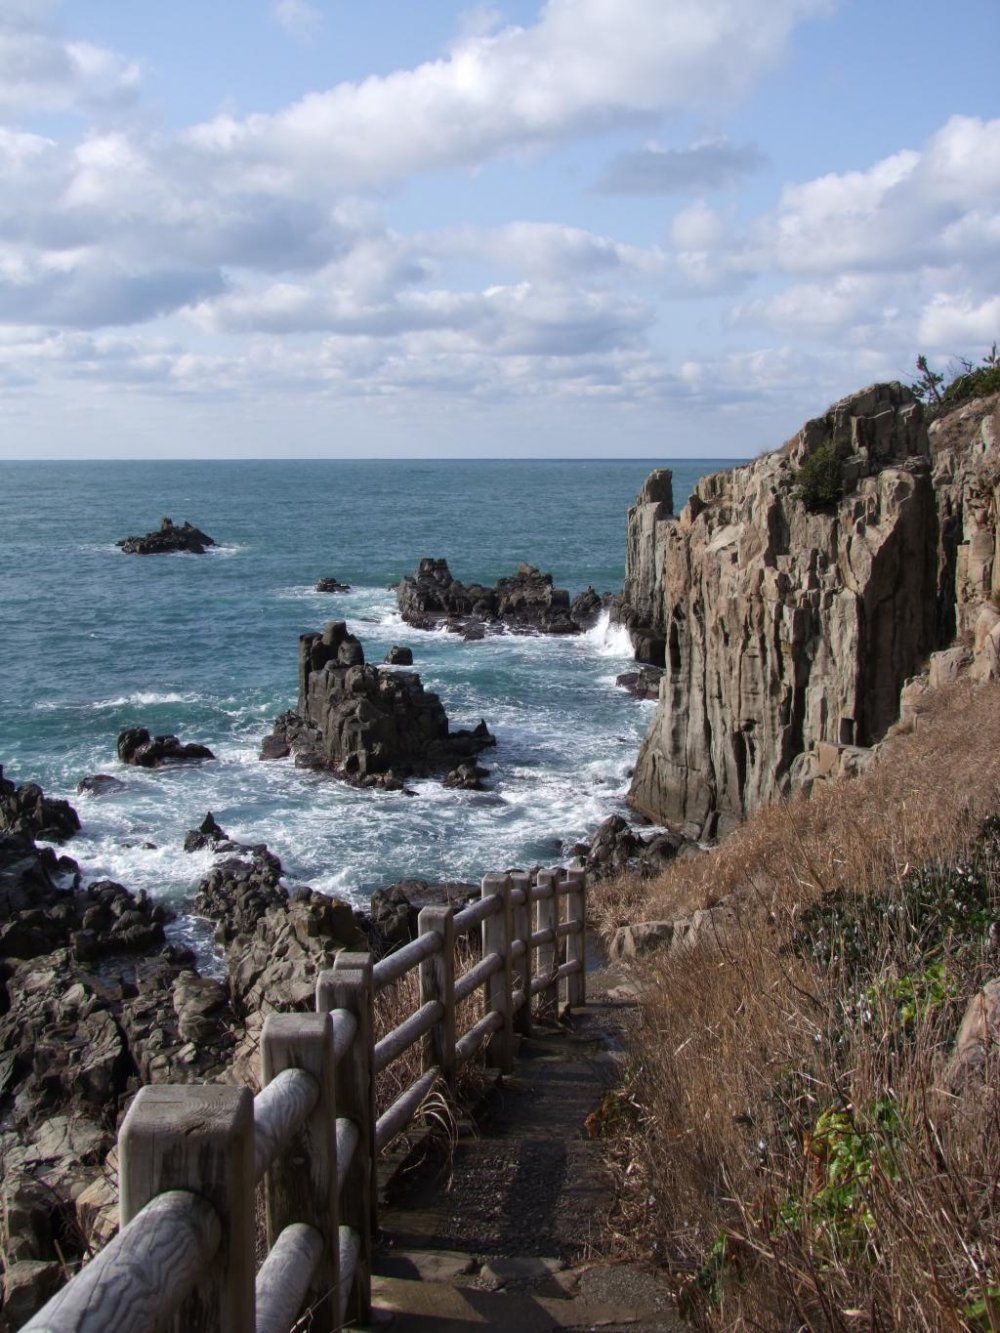 Paths along the cliffs afford wonderful views of the rocks and the sea.